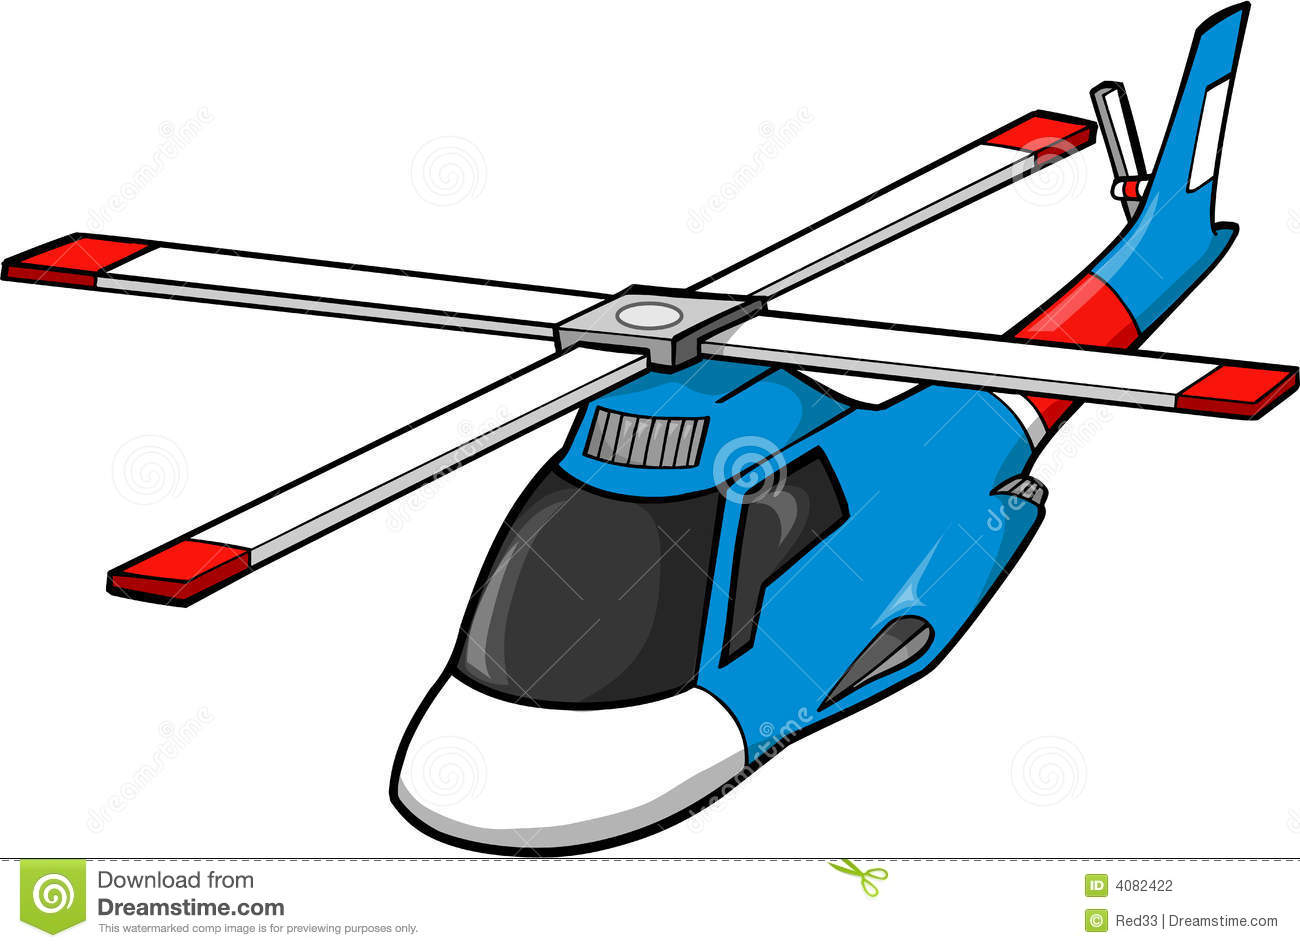 helicopter clip art clipart panda free clipart images rh clipartpanda com helicopter clip art for business card helicopter clipart no background